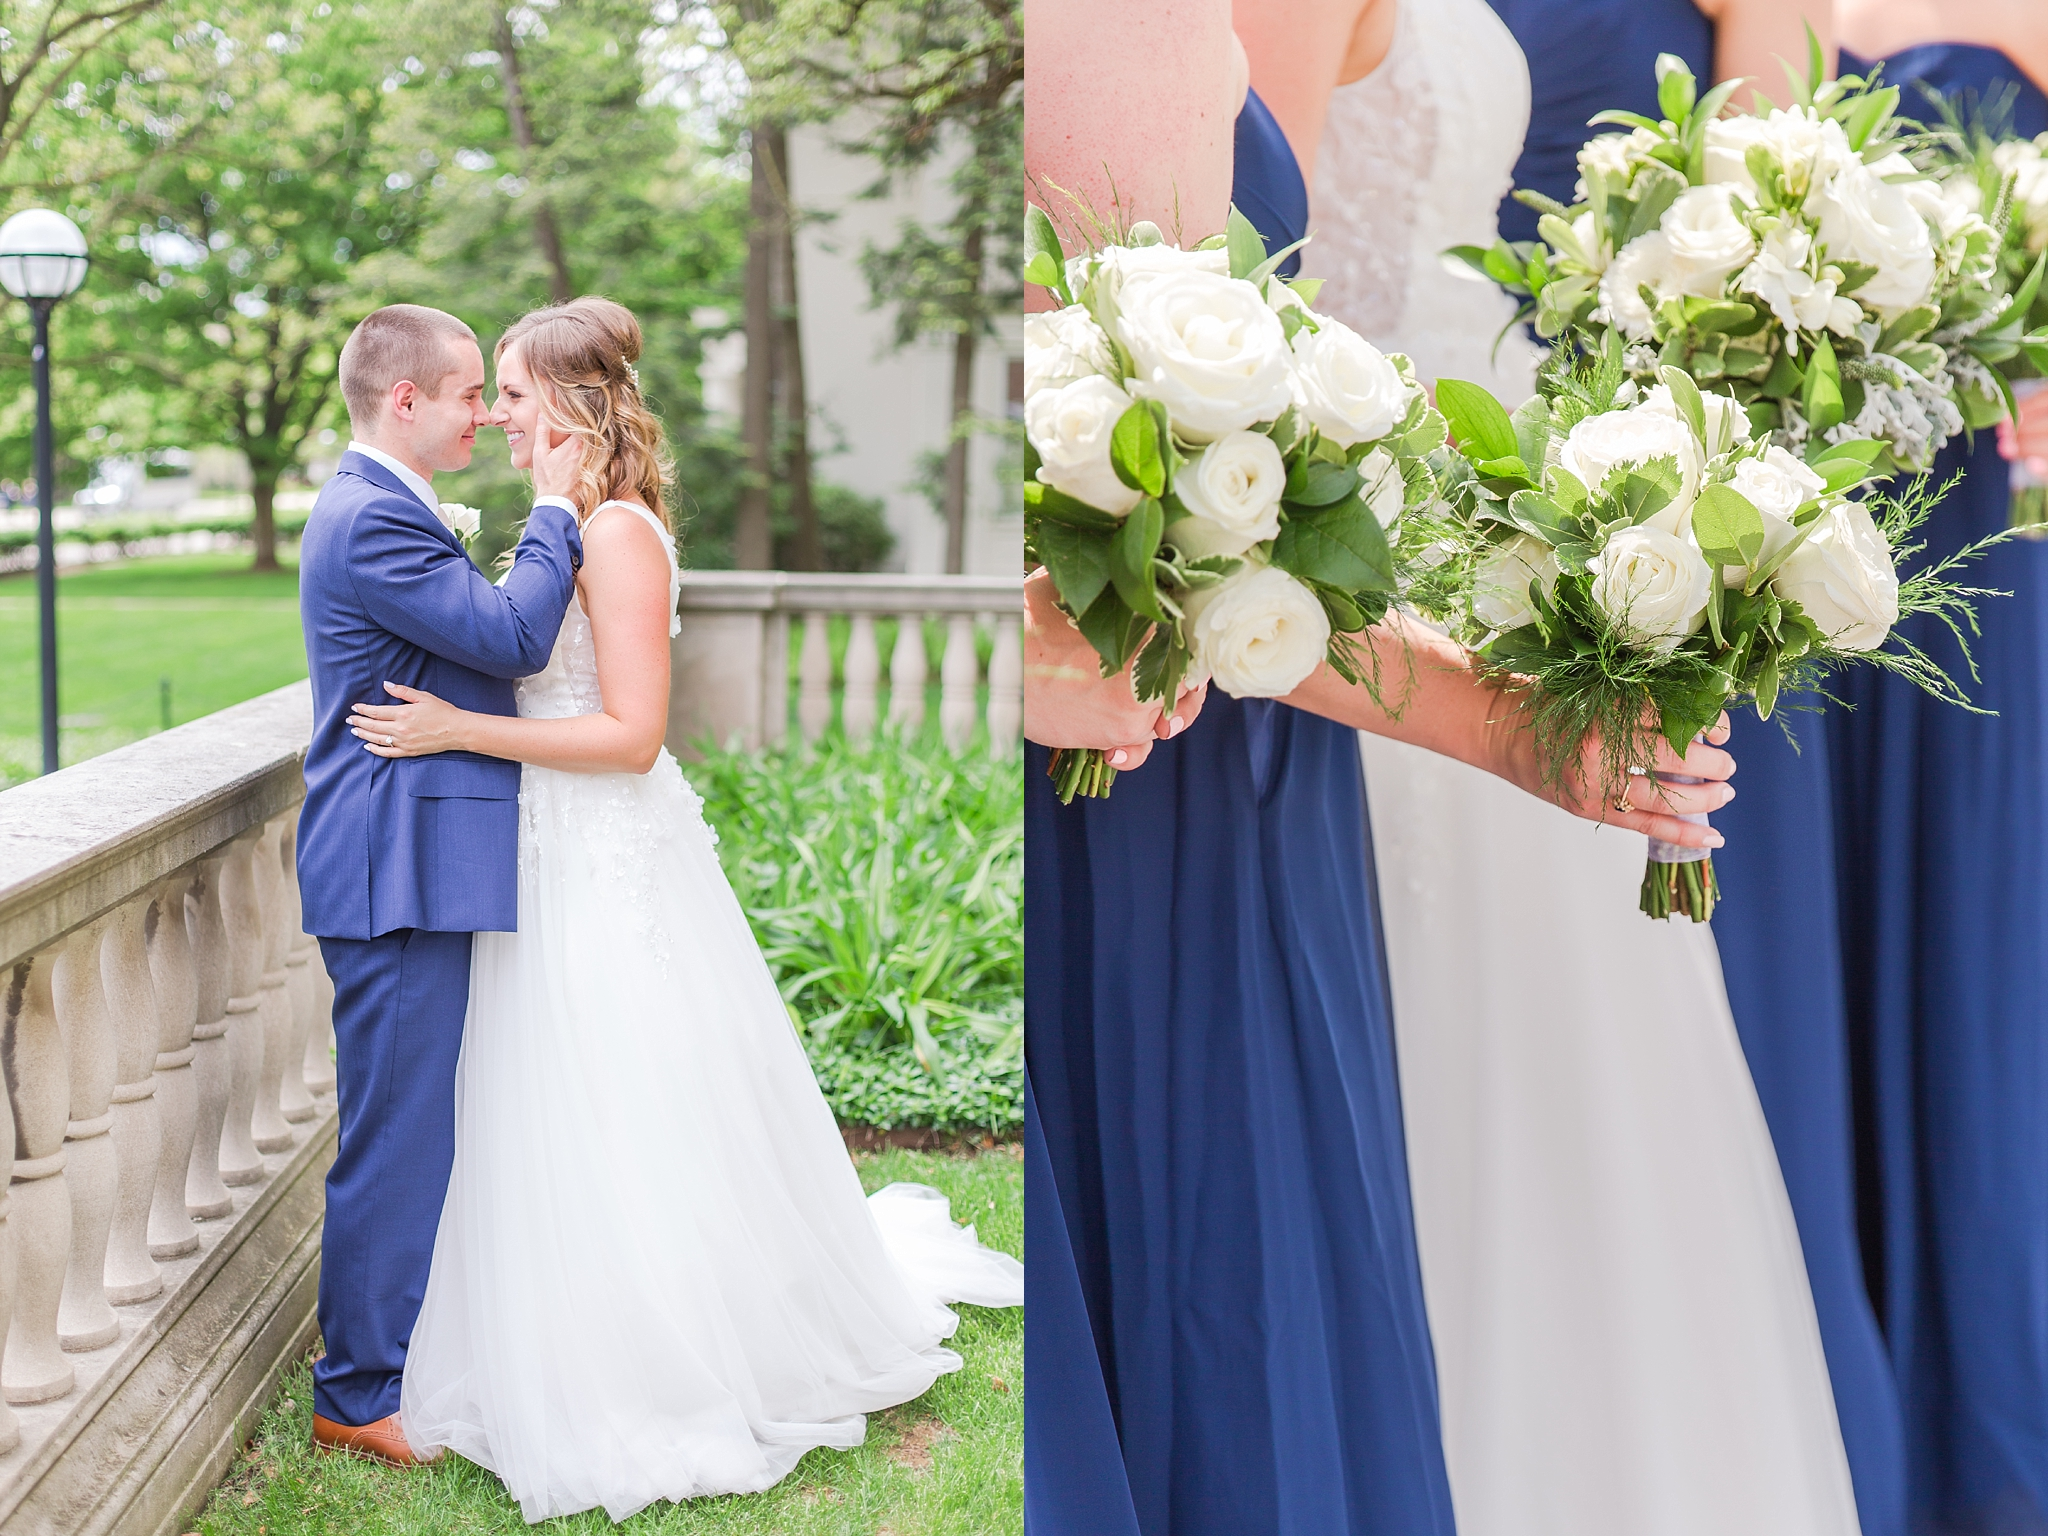 joyful-candid-laid-back-wedding-photos-in-ann-arbor-michigan-and-at-the-eagle-crest-golf-resort-by-courtney-carolyn-photography_0050.jpg